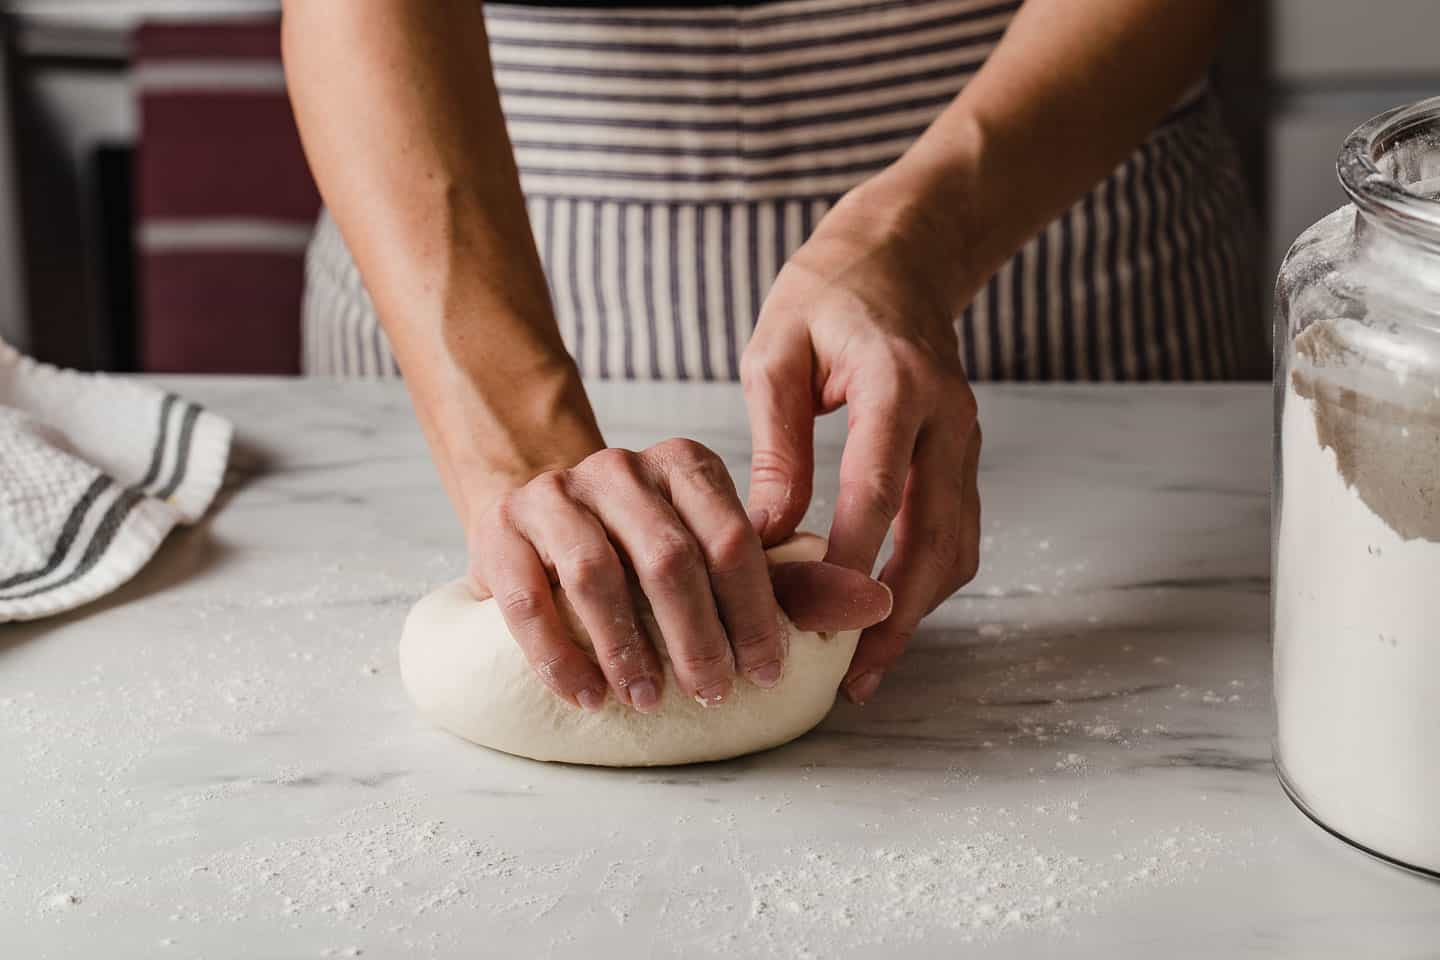 A woman kneading sourdough english muffins dough.